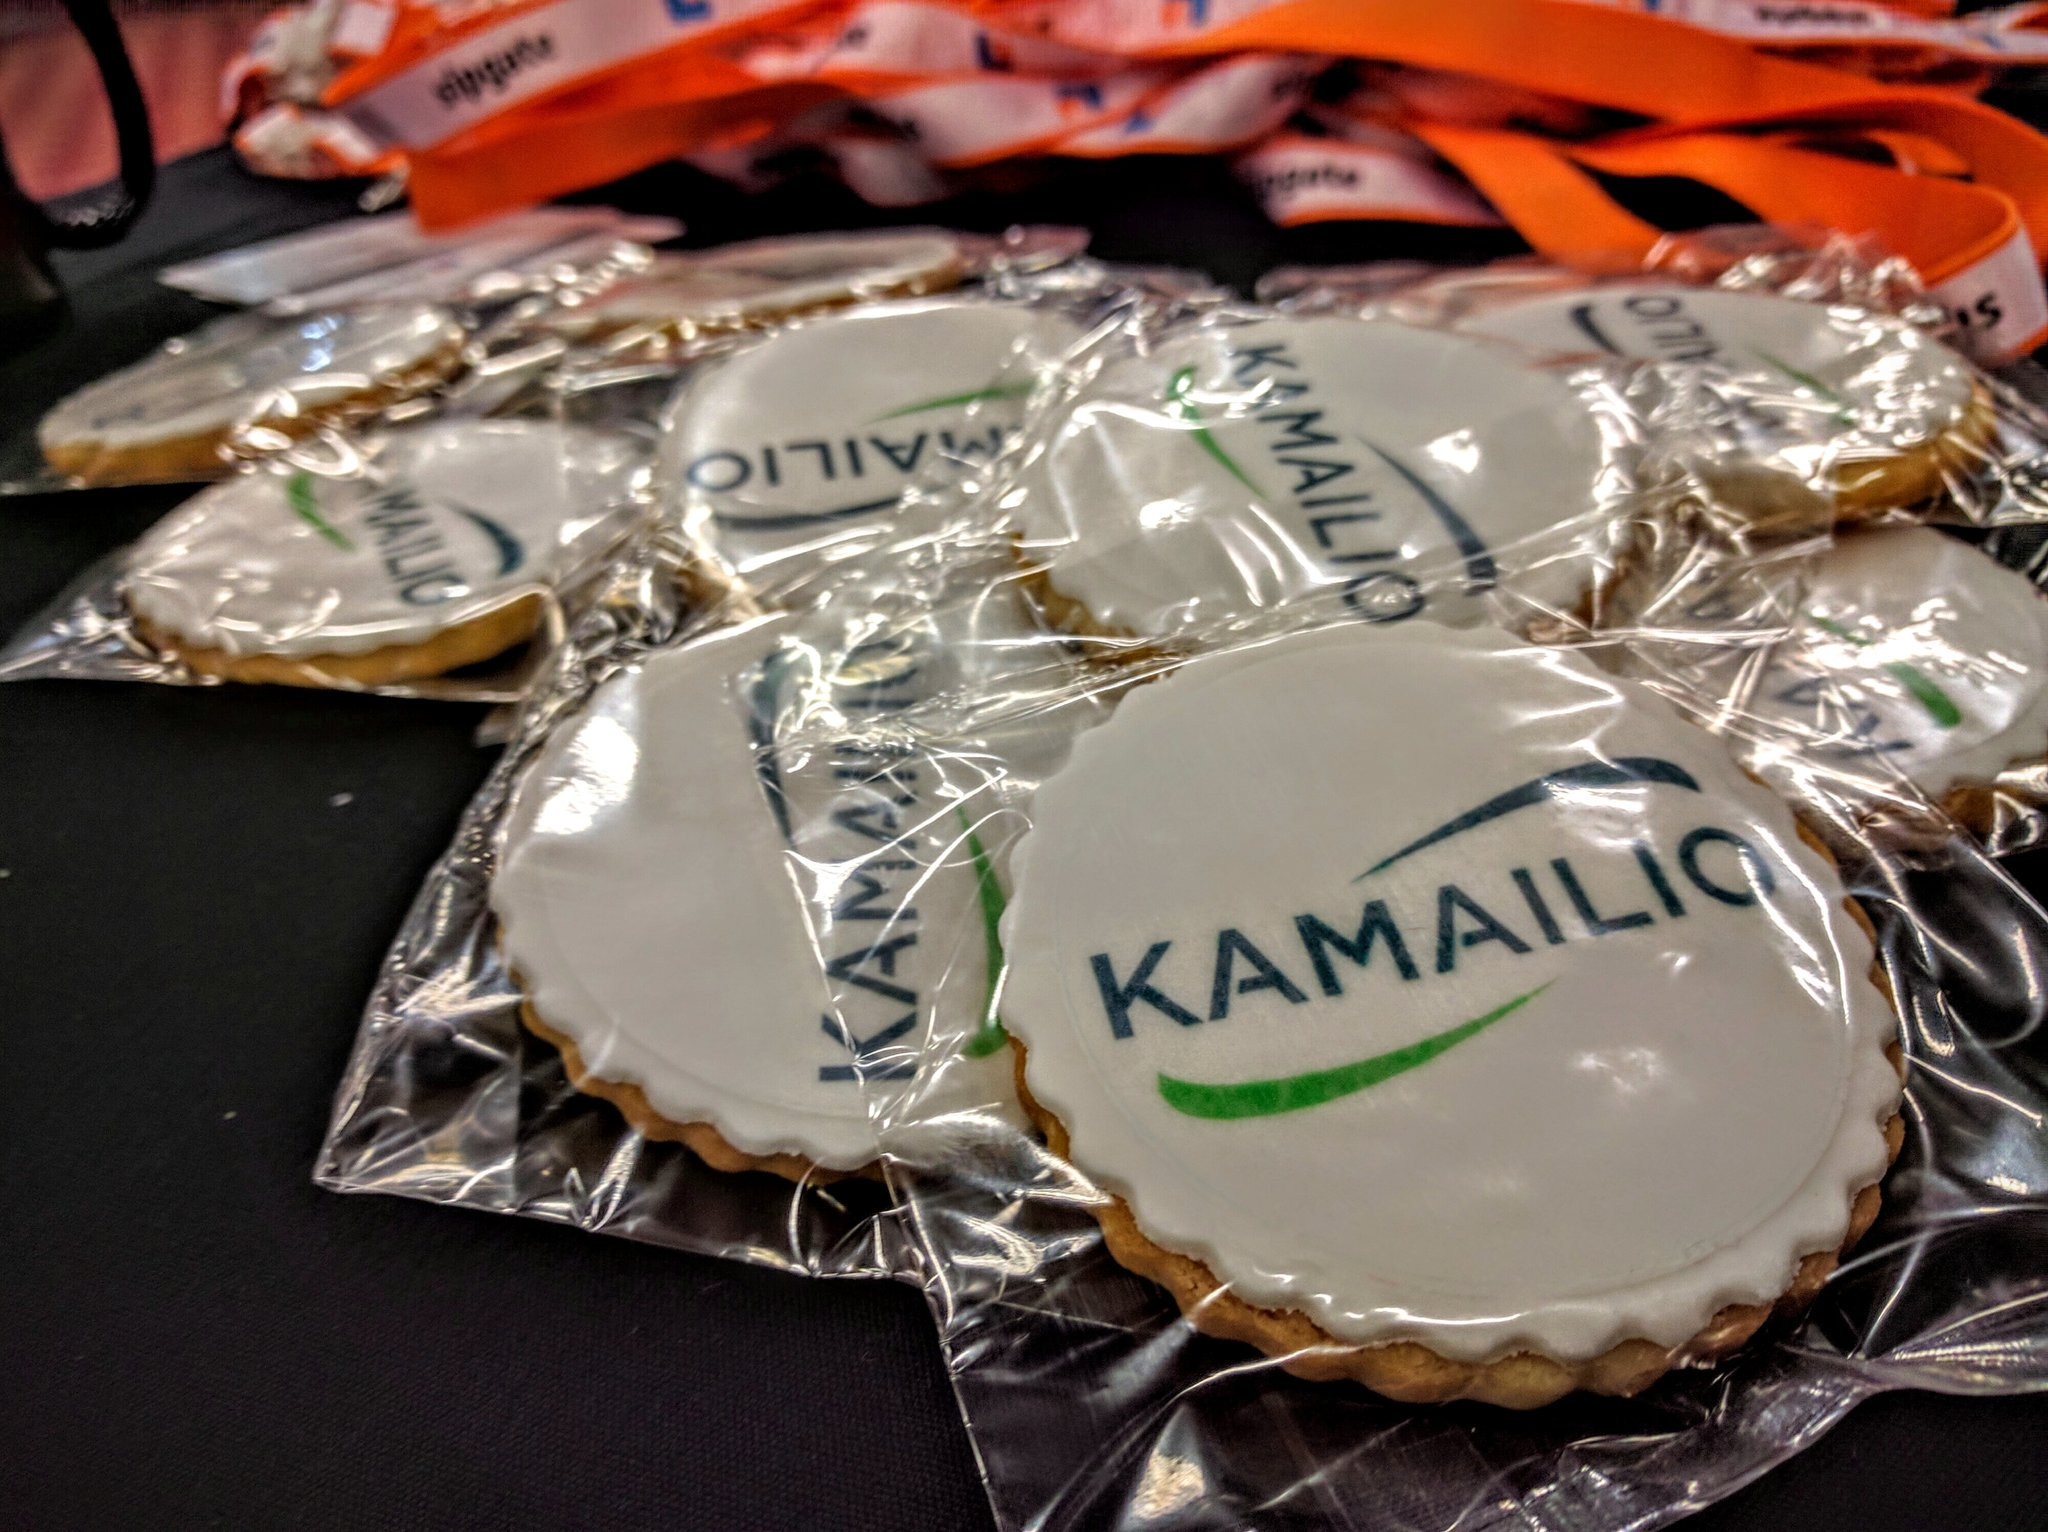 Kamailio Cookies from Bearkery Bakery